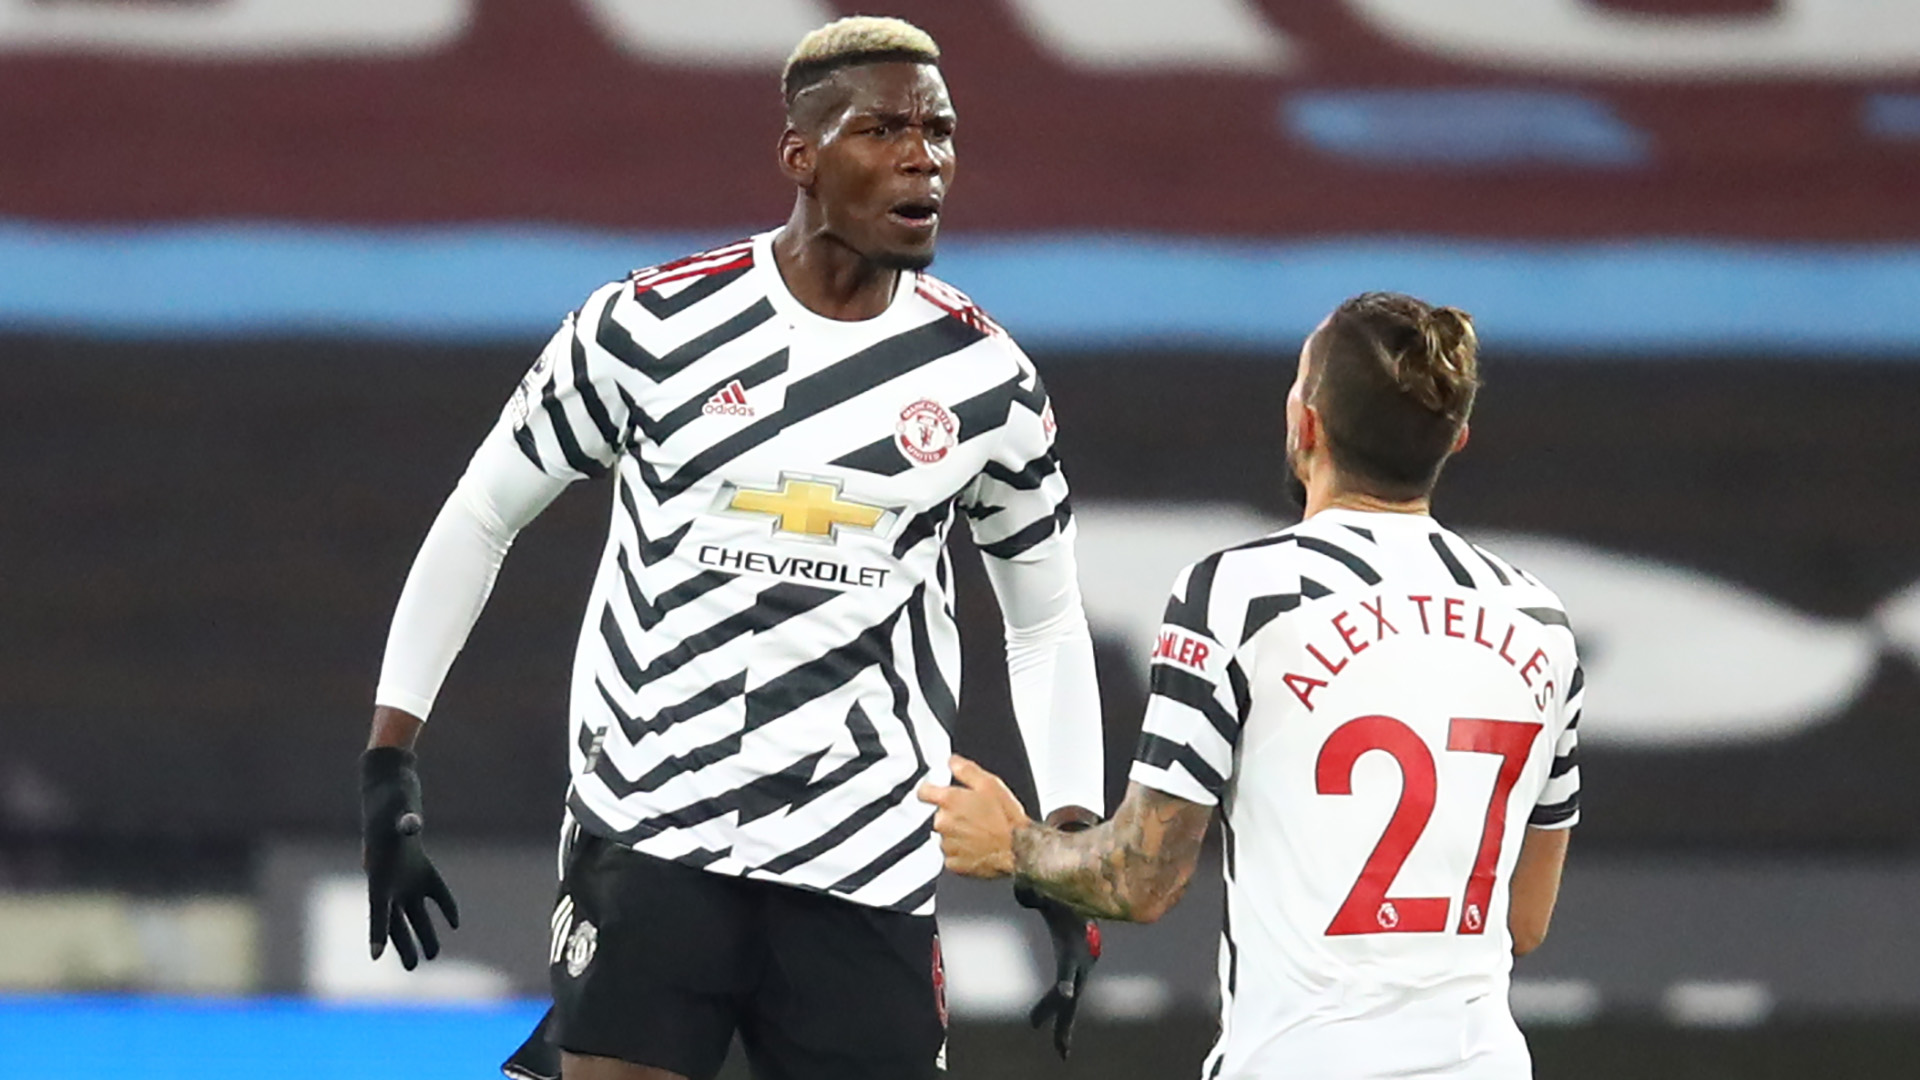 'I'm not the boss on the pitch' - Pogba plays down VAR controversy in Manchester United's win at Burnley